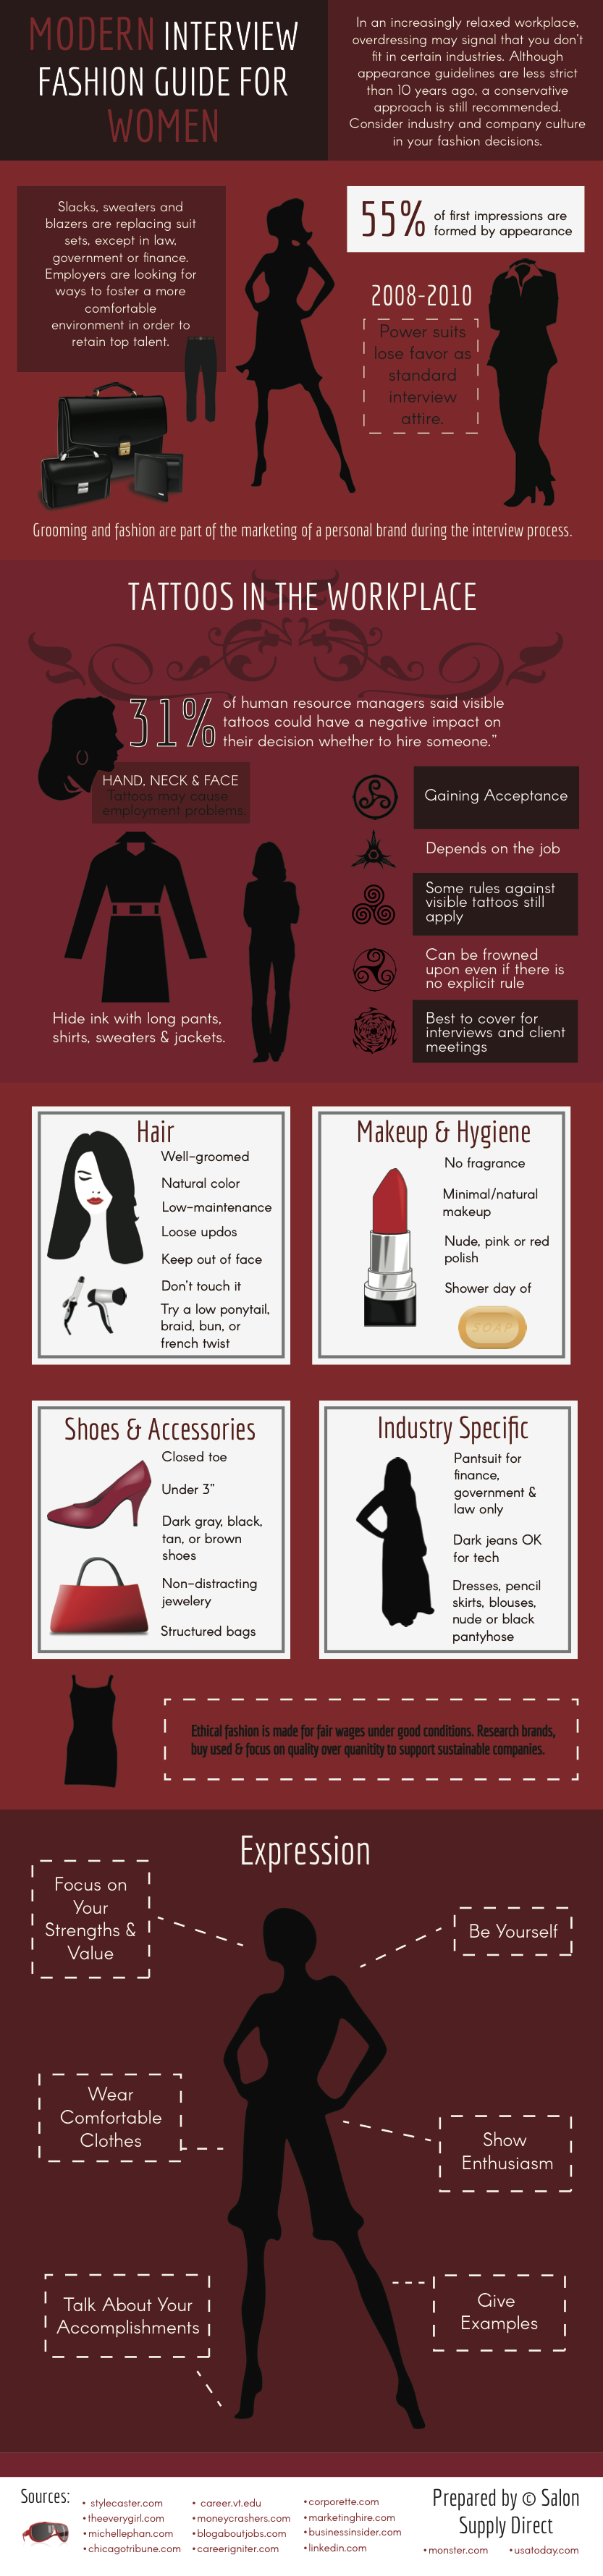 Modern Interview Fashion Guide for Women